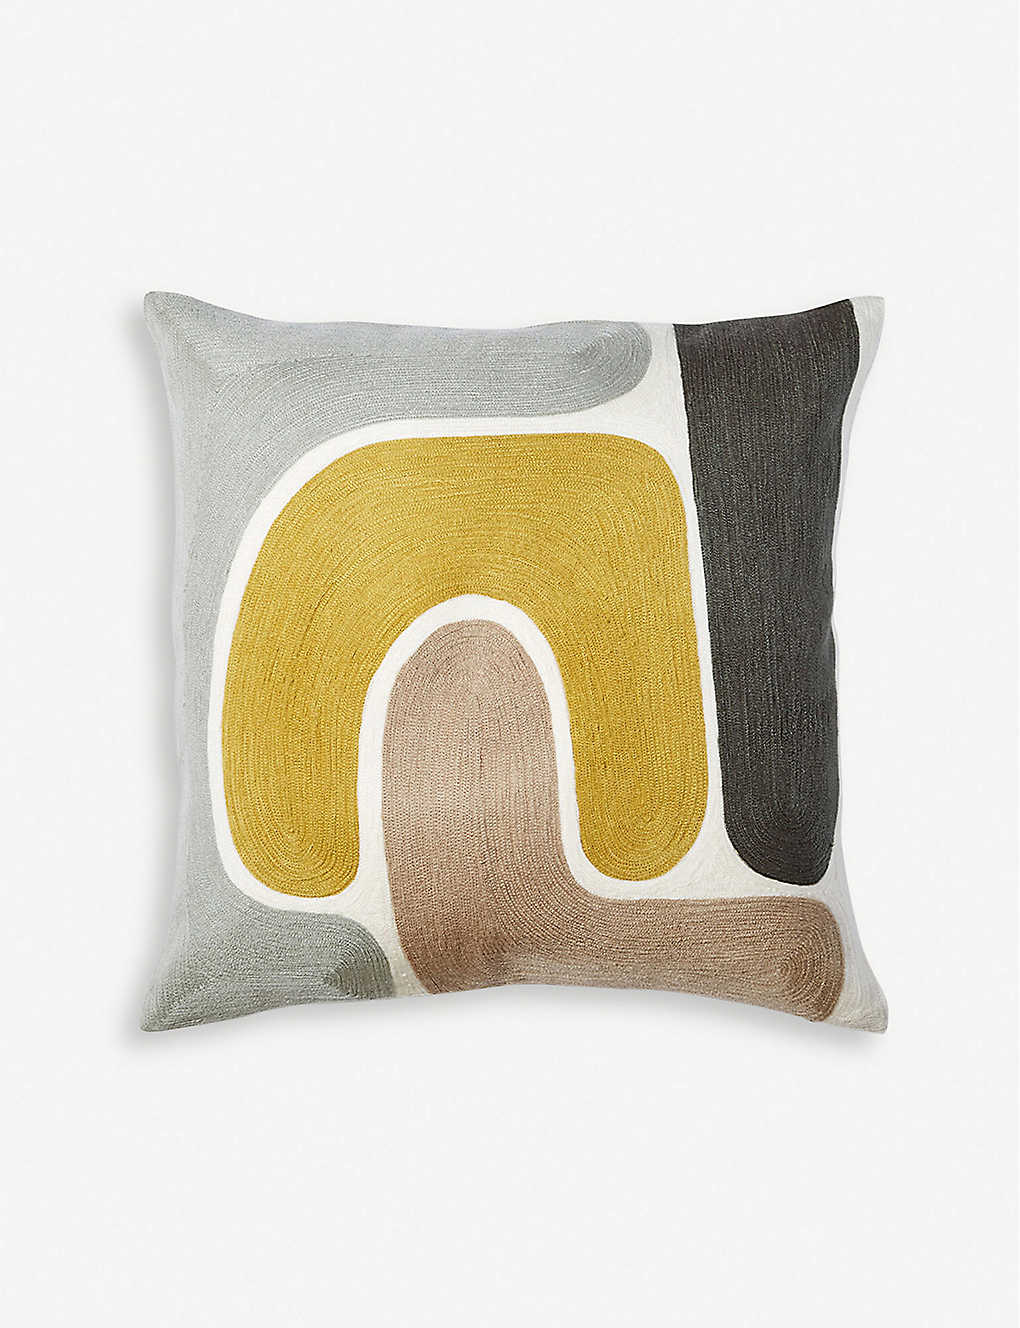 THE CONRAN SHOP: Knoss embroidered cushion cover 45cm